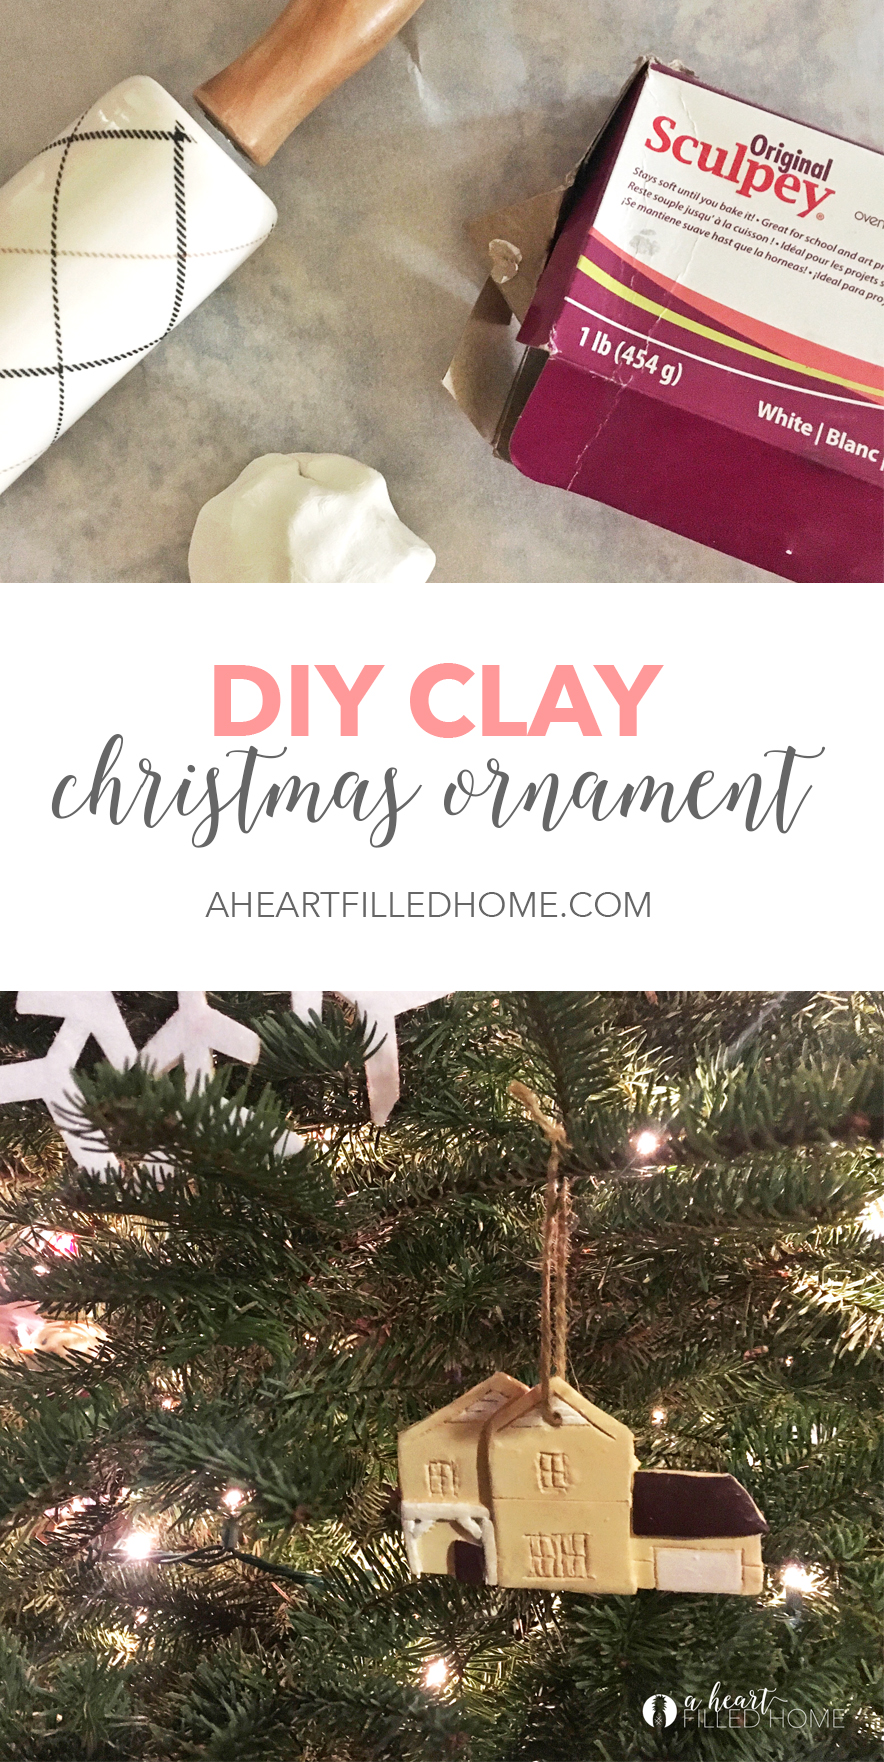 DIY Clay Christmas Ornament from aheartfilledhome.com